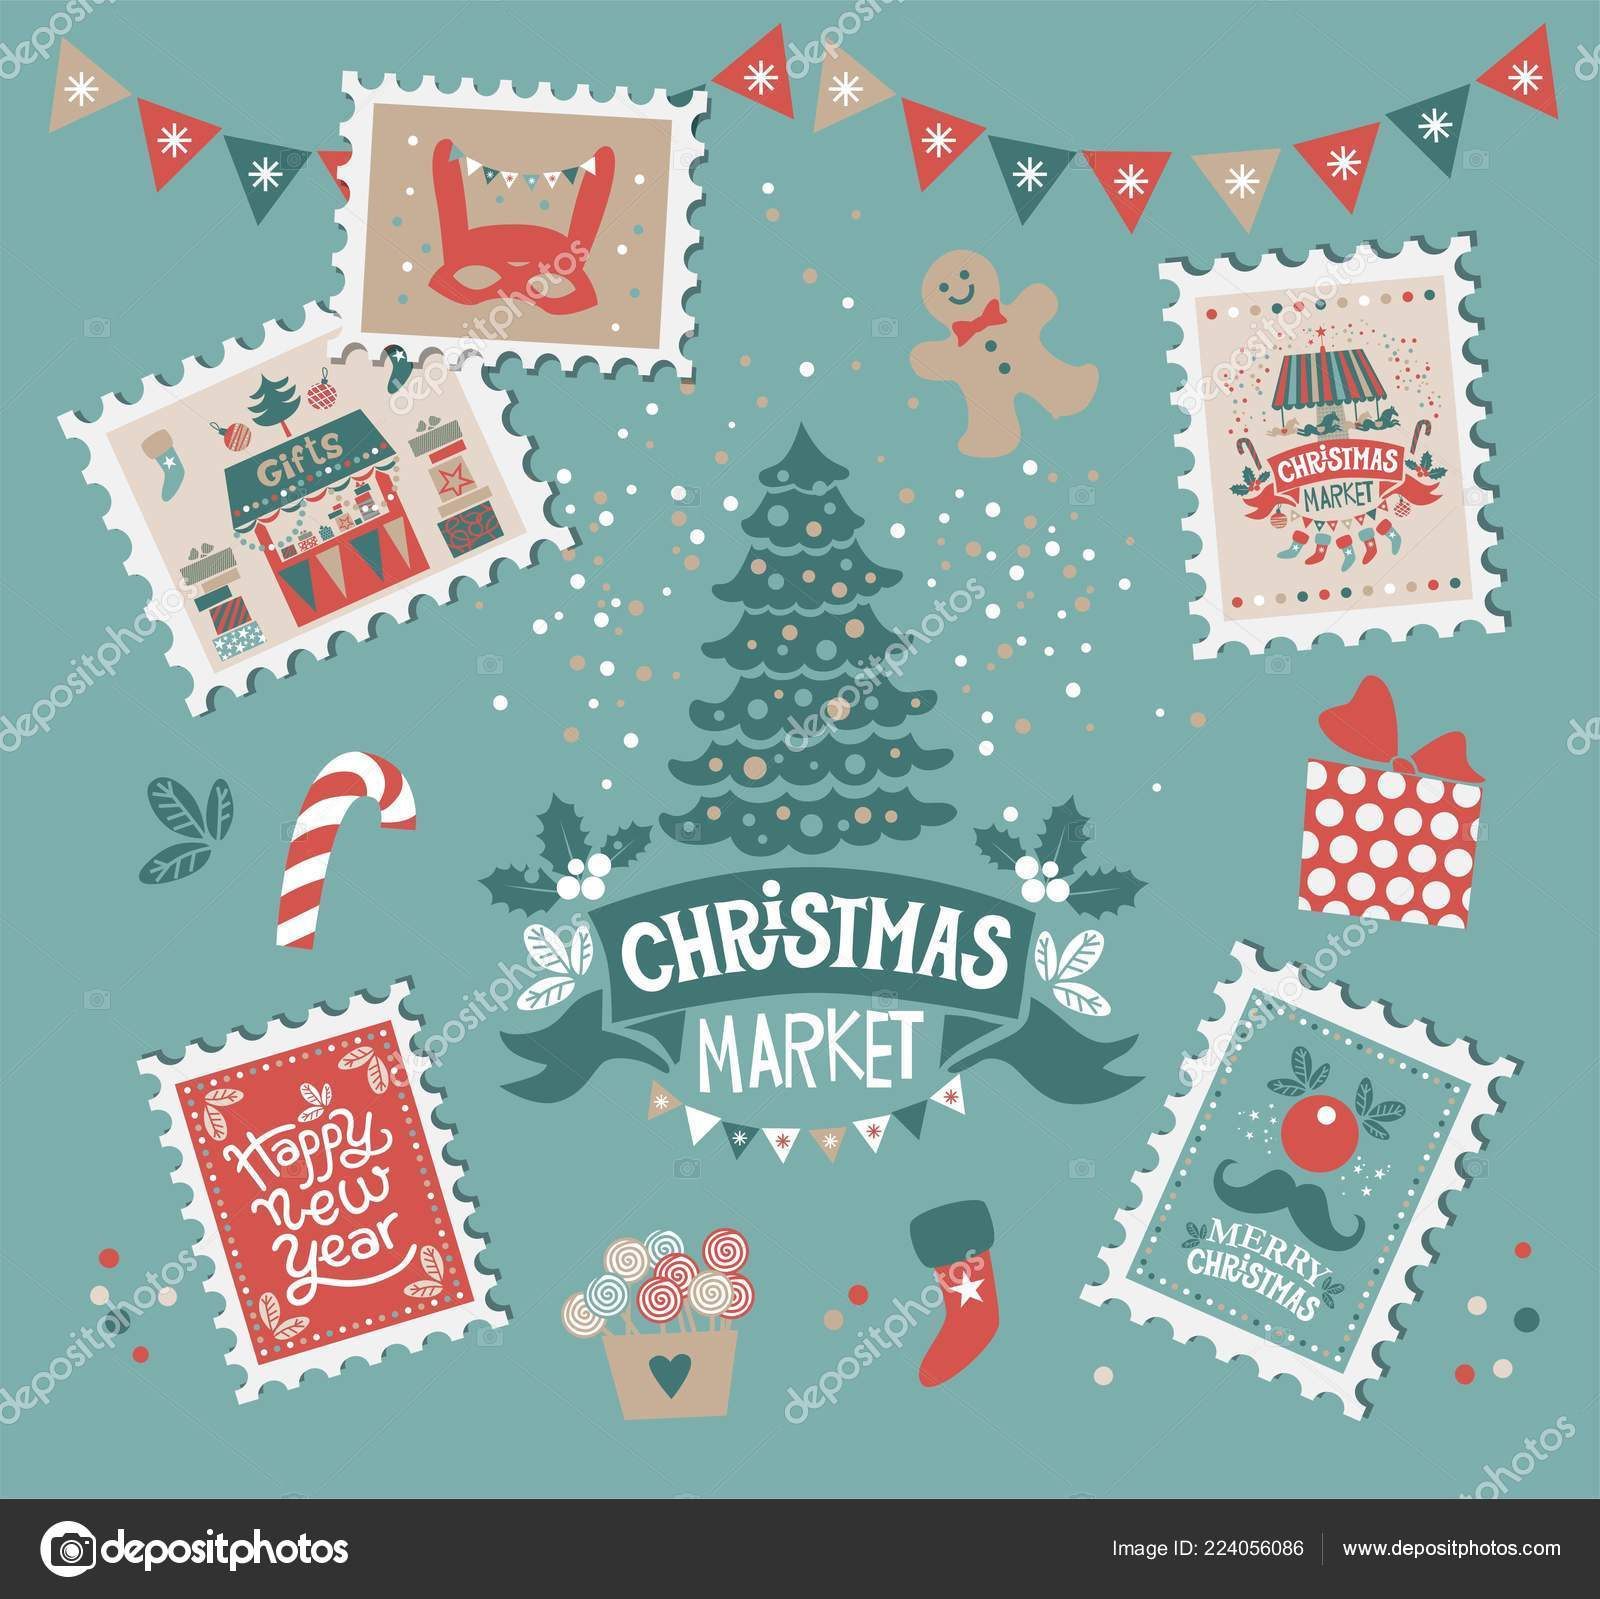 merry christmas happy new year set stamps christmas elements christmas stock vector - Merry Christmas And Happy New Year